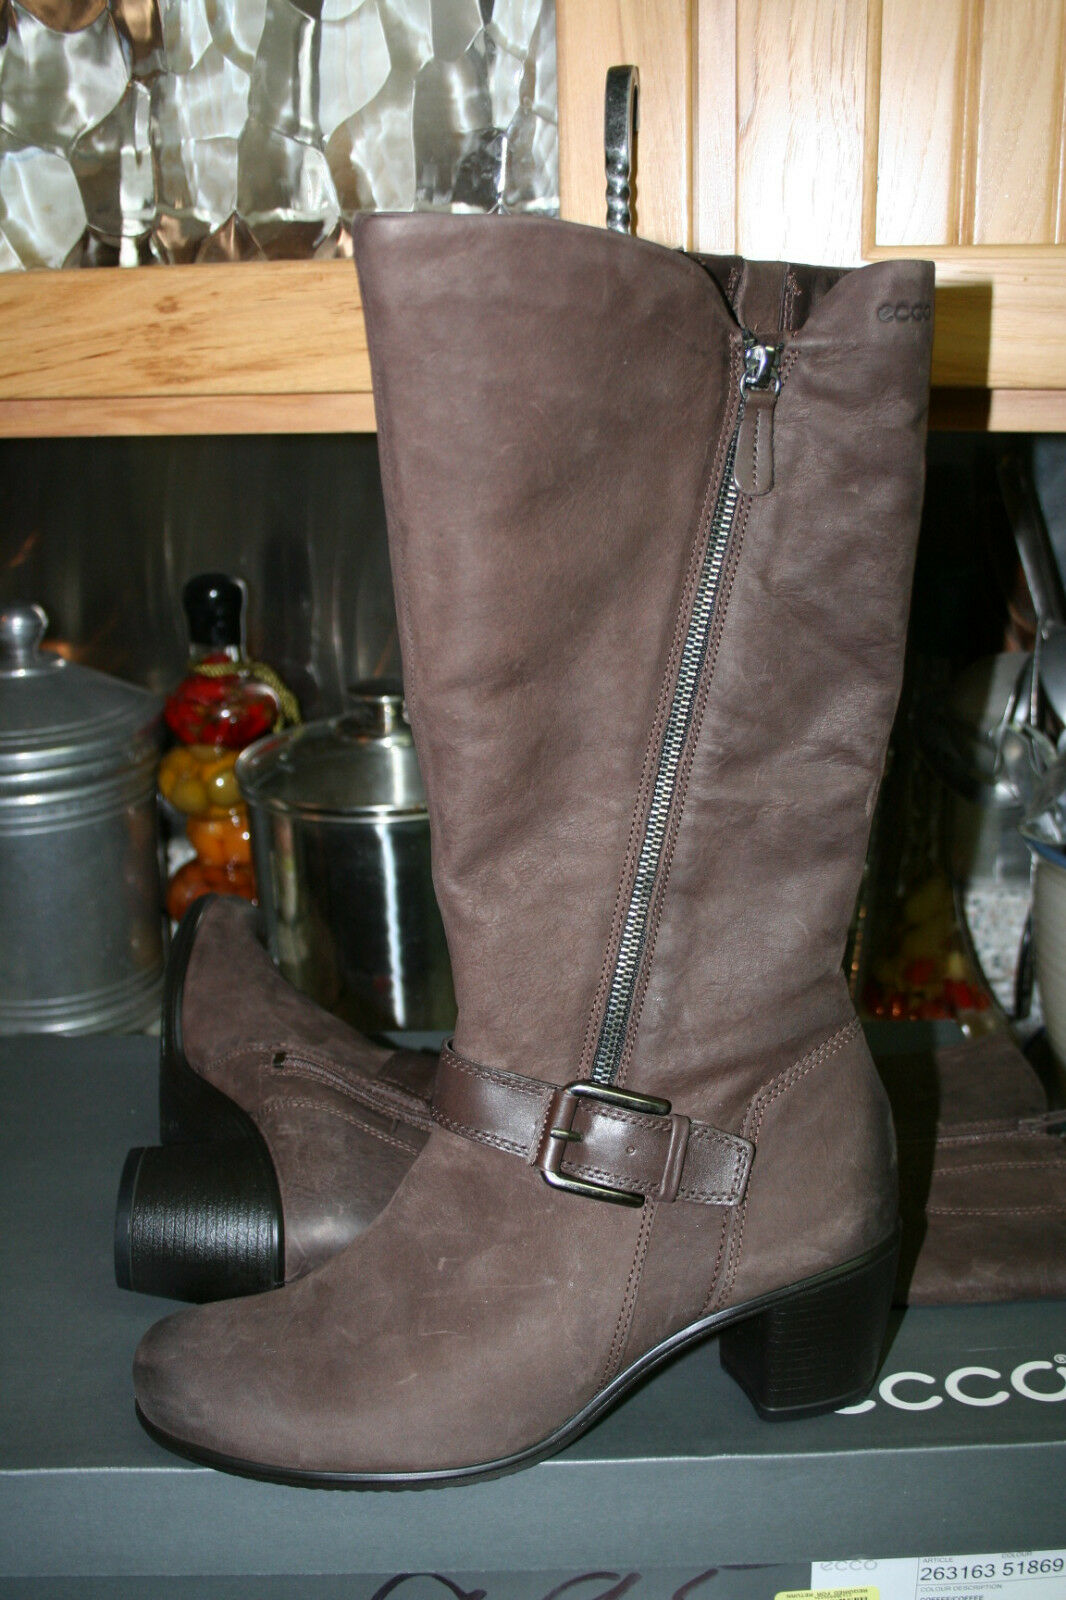 ECCO TOUCH 55 B HIGH CUT CAFE ZIP COFFEE CAFE CUT  SIZE 40/9-9.5  M 239 NEW Stiefel 192e79